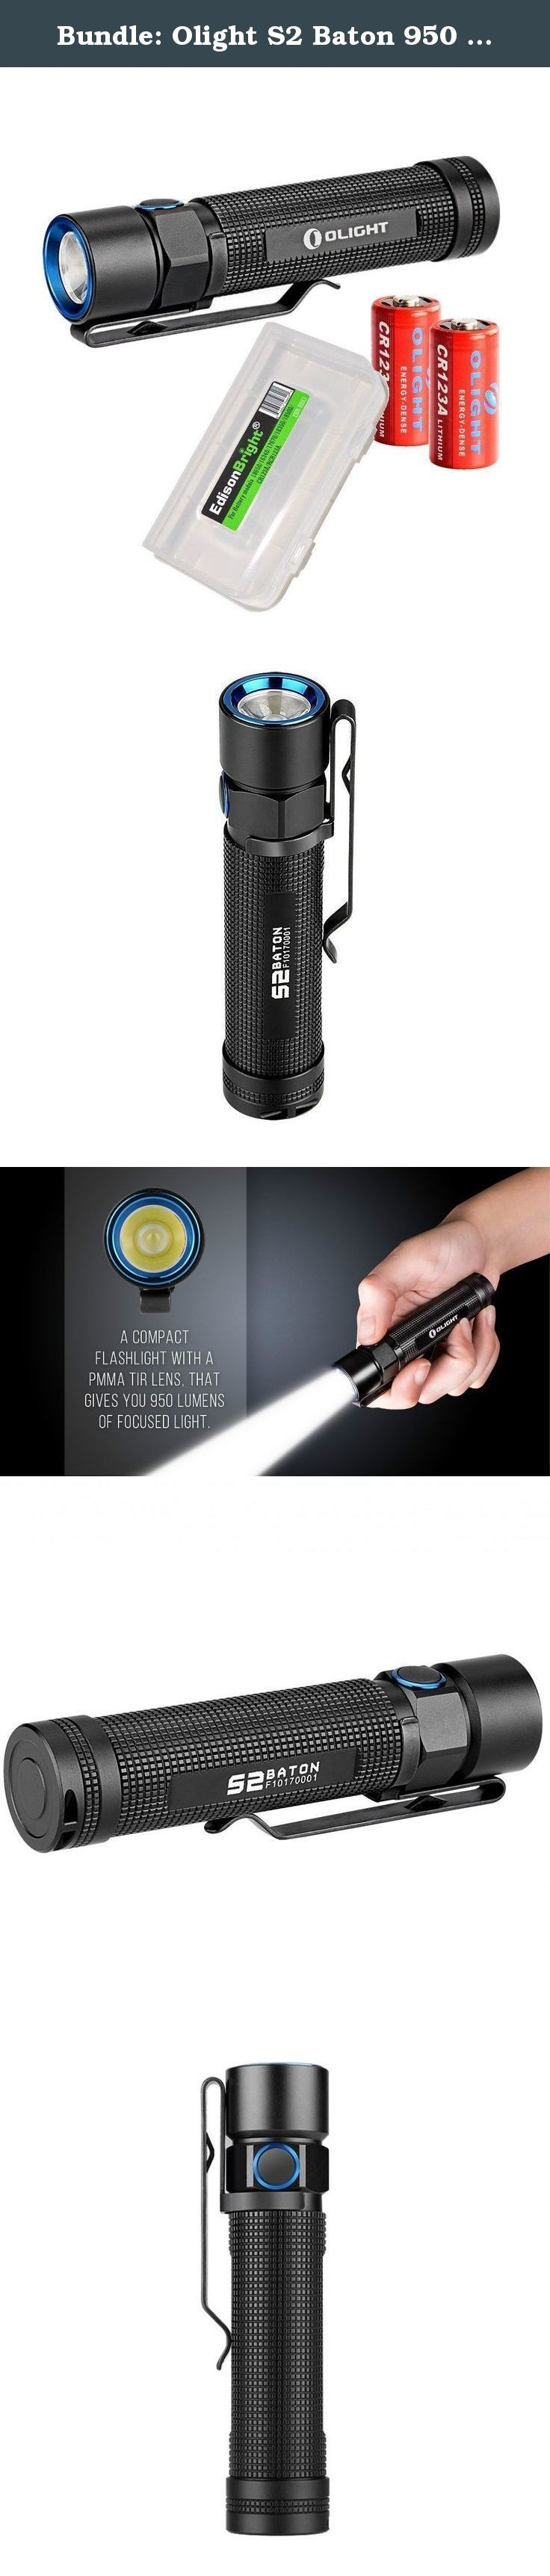 Bundle: Olight S2 Baton 950 Lumen CREE LED Flashlight with 2X Olight CR123 lithium batteries and EdisonBright battery carry case. The S2 Baton (S2) is a new side switch LED flashlight powered by a single 18650 battery or two CR123A lithium batteries. The S2 uses a high performance Cree XM-L2 LED which is able to deliver a maximum output of 950 lumens. The S2 carries a homogeneous beam by using a 90% light transmittance PMMA TIR lens that provides the light with a cool white balanced...